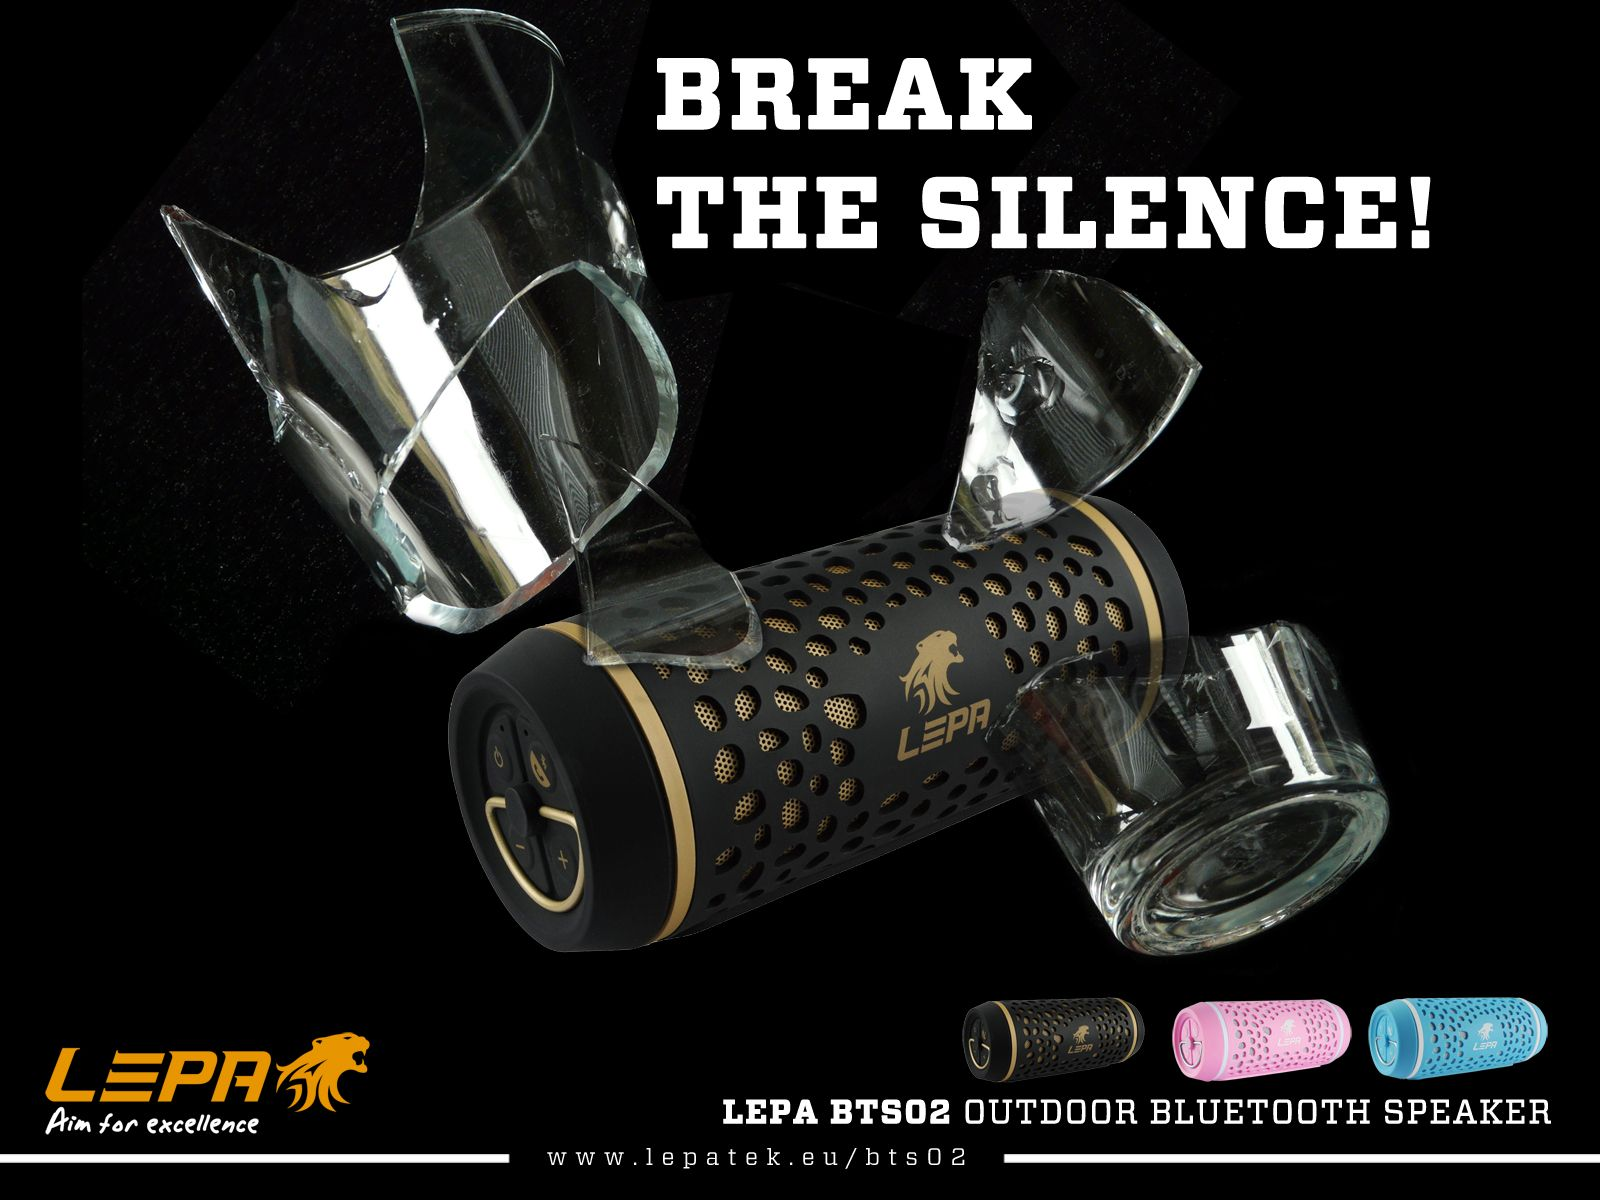 LEPA BTS02 Outdoor Bluetooth Speakers / Available in May 2015  #breakthesilence #lepa #bts02 #outdoormusic